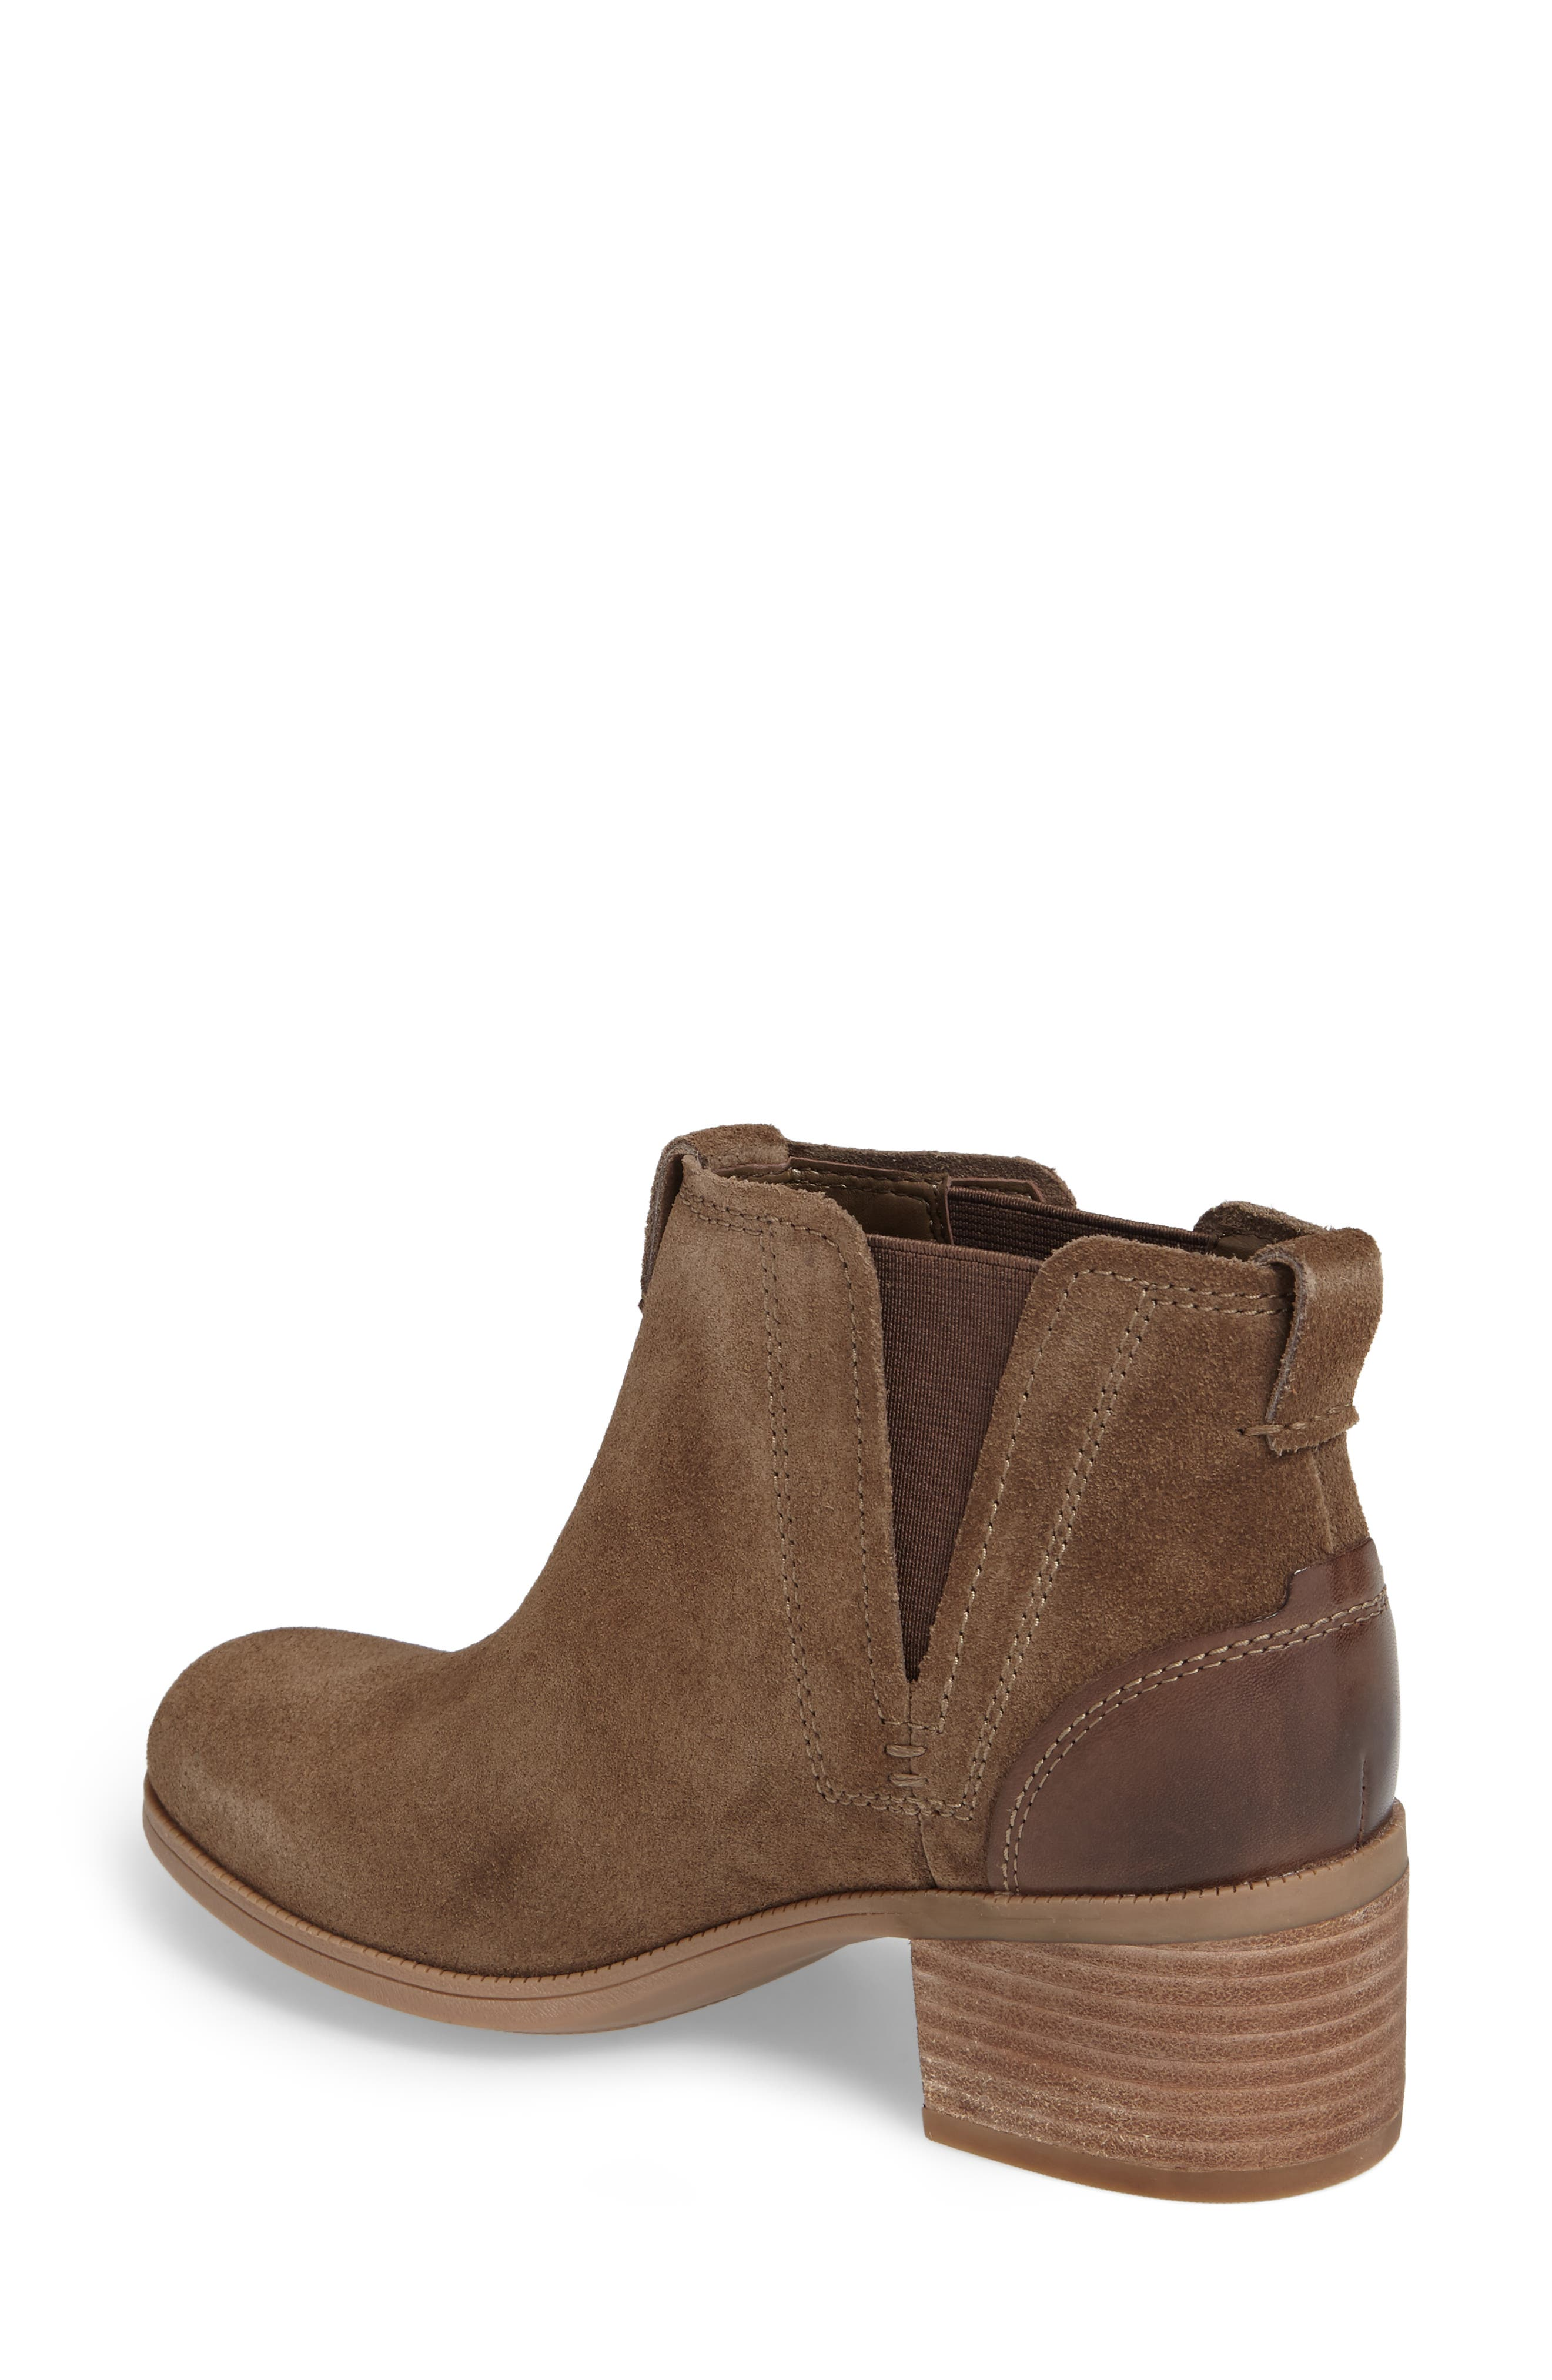 Maypearl Daisy Bootie,                             Alternate thumbnail 6, color,